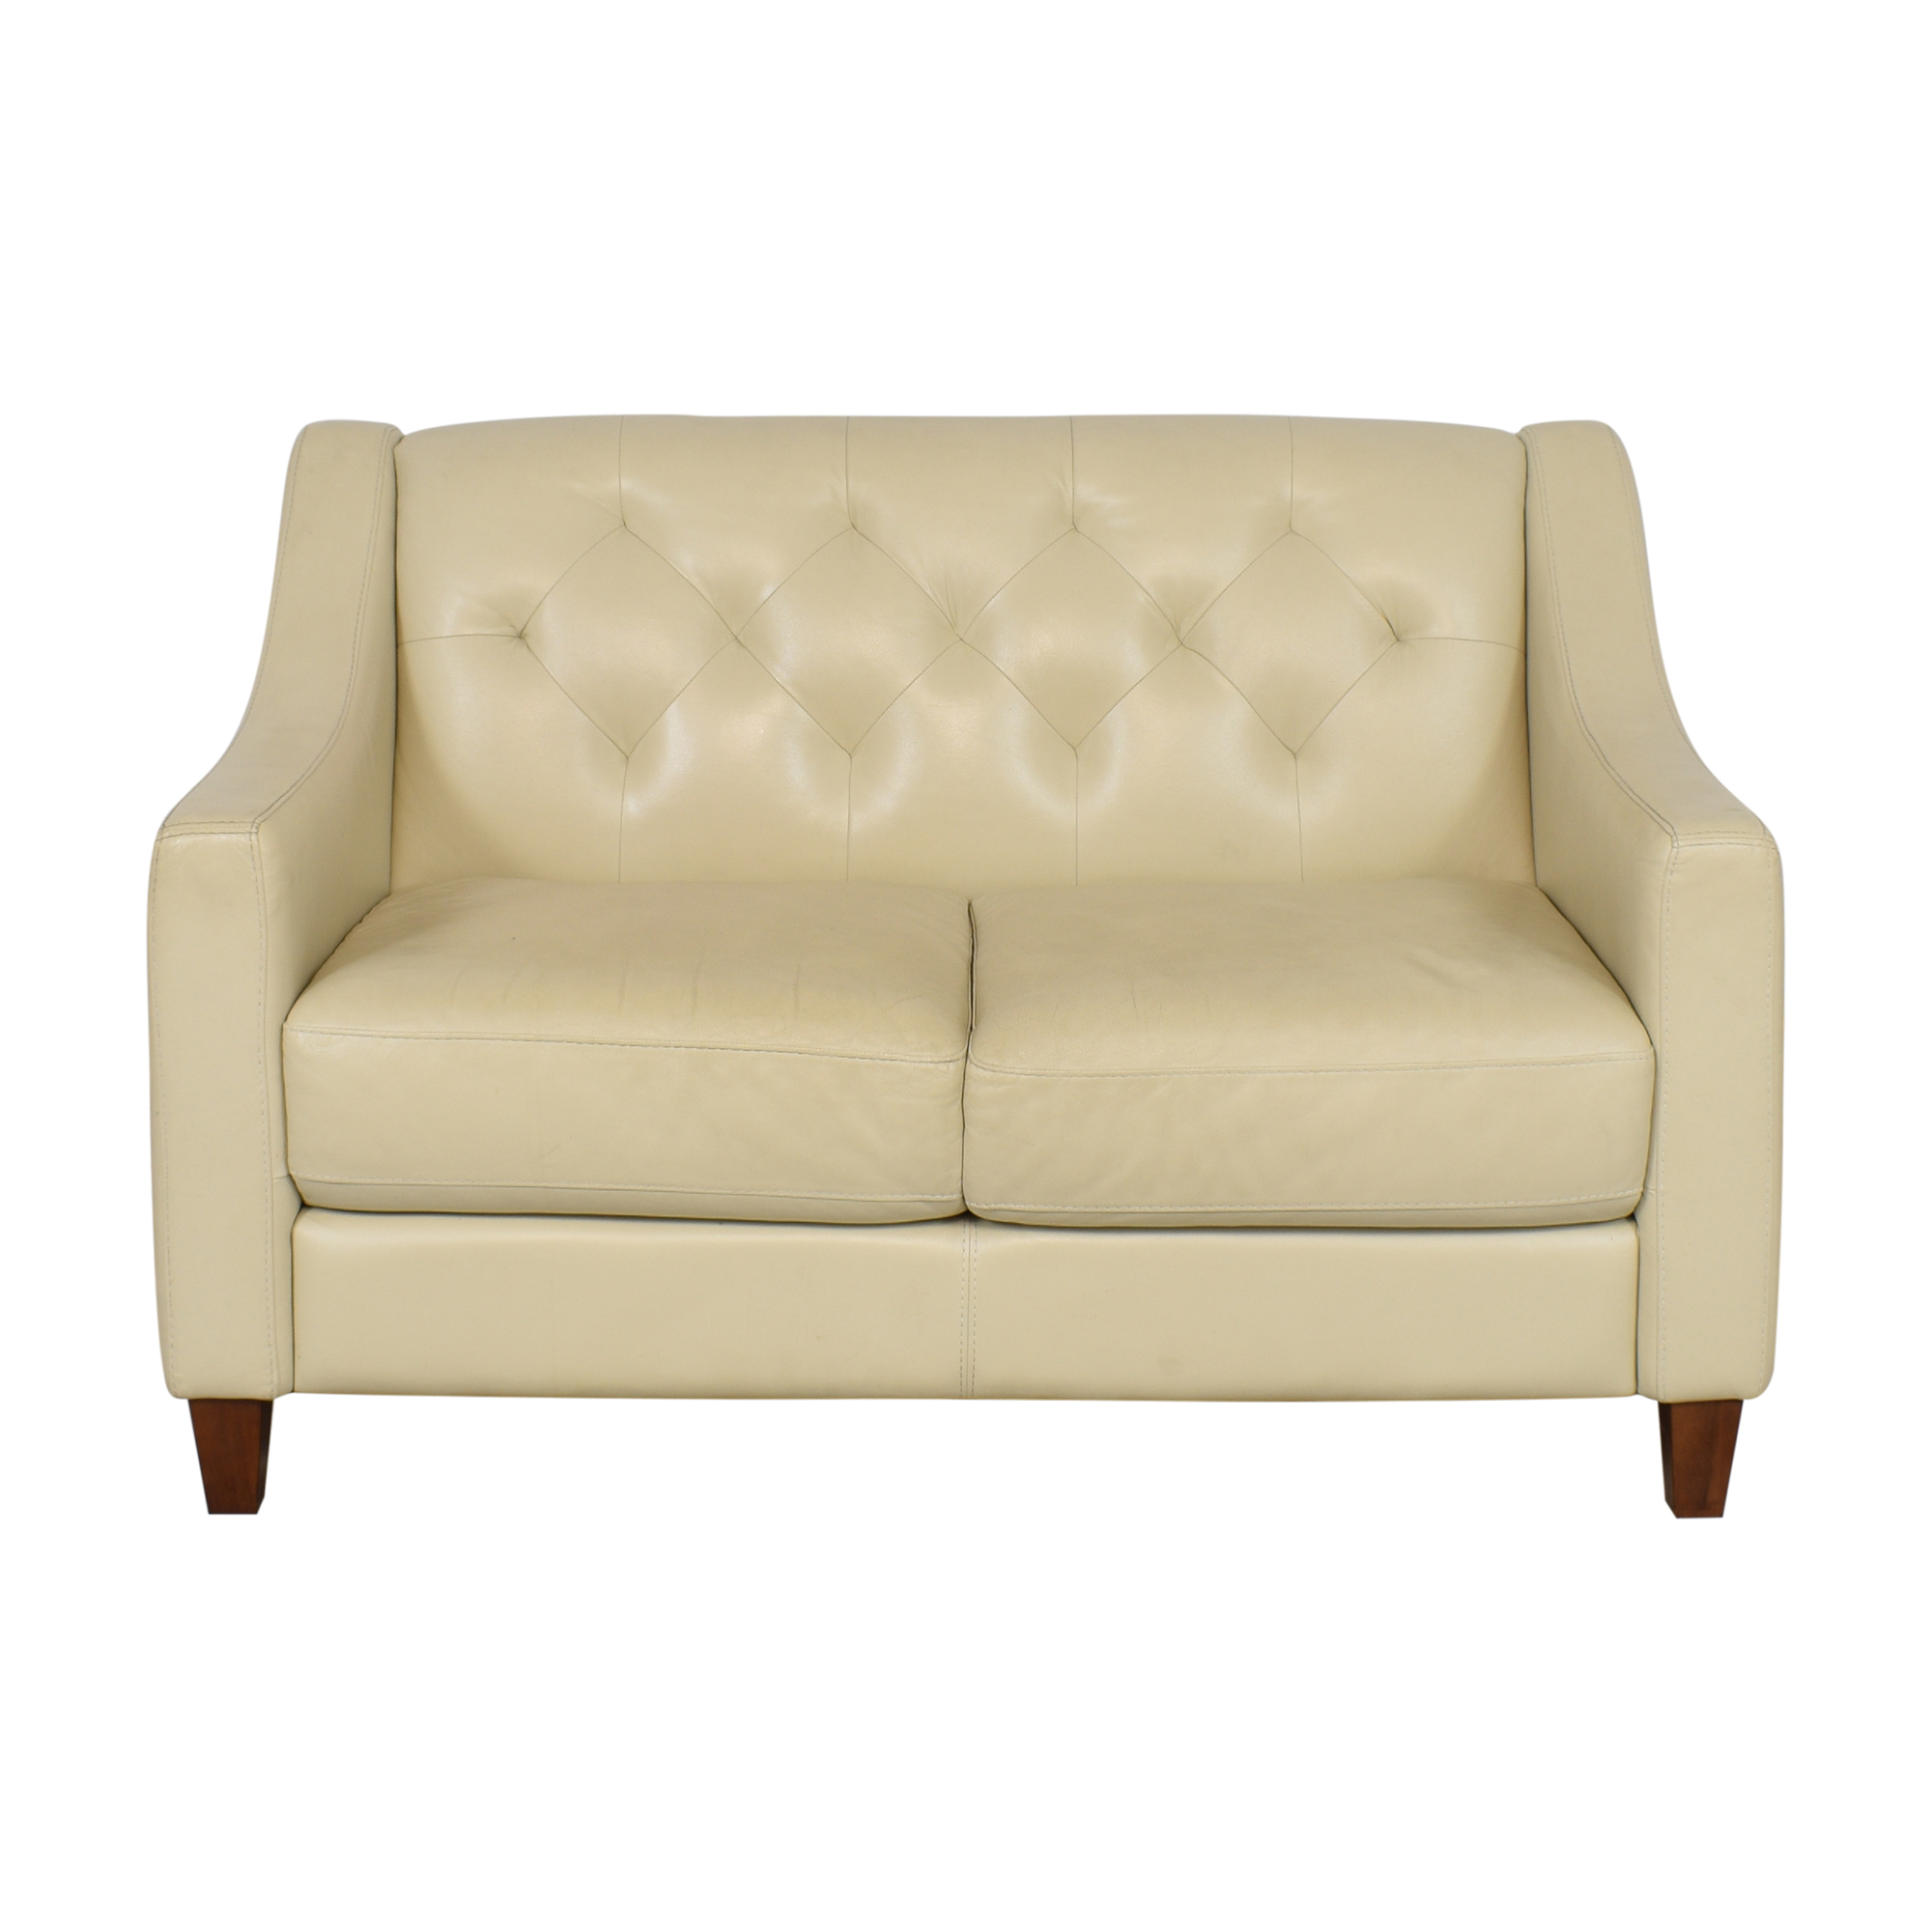 buy Chateau d'Ax Slope Arm Tufted Loveseat Chateau d'Ax Sofas